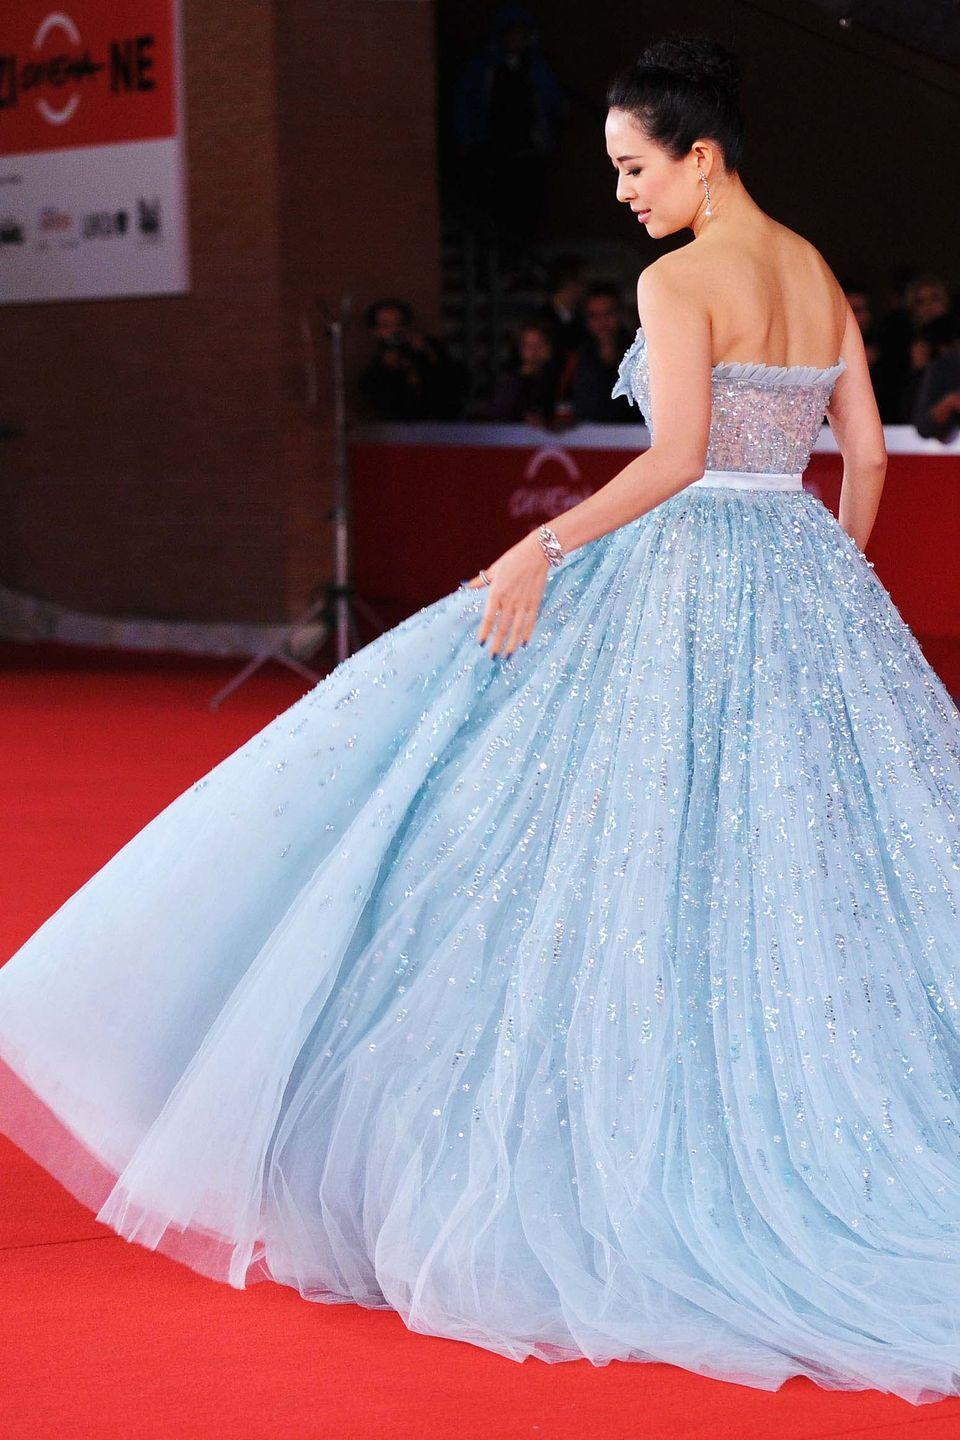 <p>Zhang Ziyi looked like a fairytale princess at the<em> Love For Life</em> premiere in Rome, wearing a sparkling blue gown from the Christian Dior Resort 2011 collection.</p>